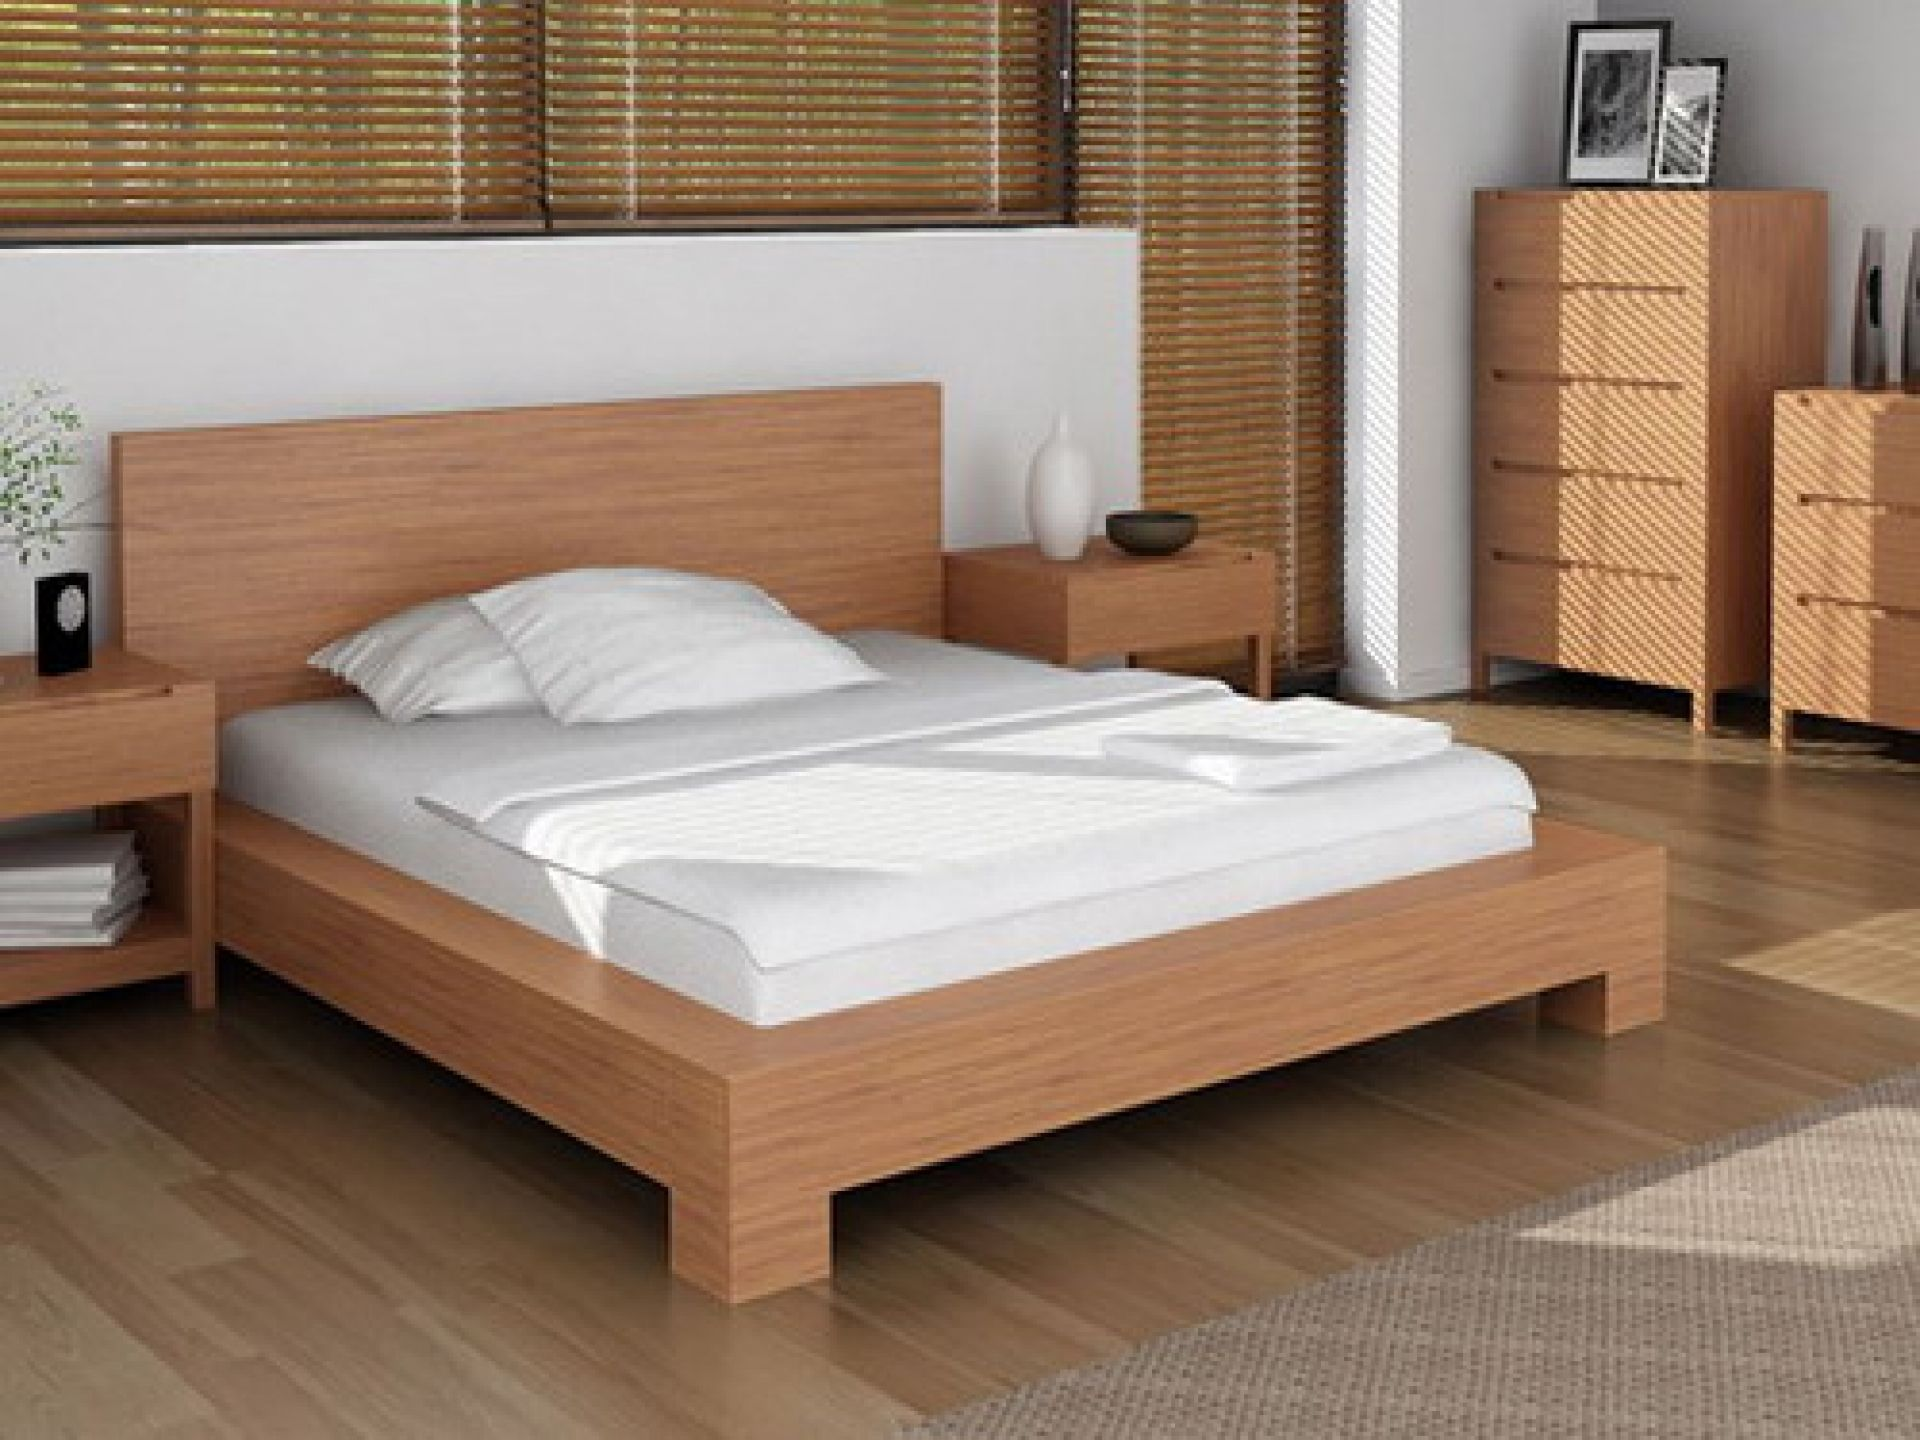 Canvas of simple wood bed frame ideas bedroom design Simple wooden bed designs